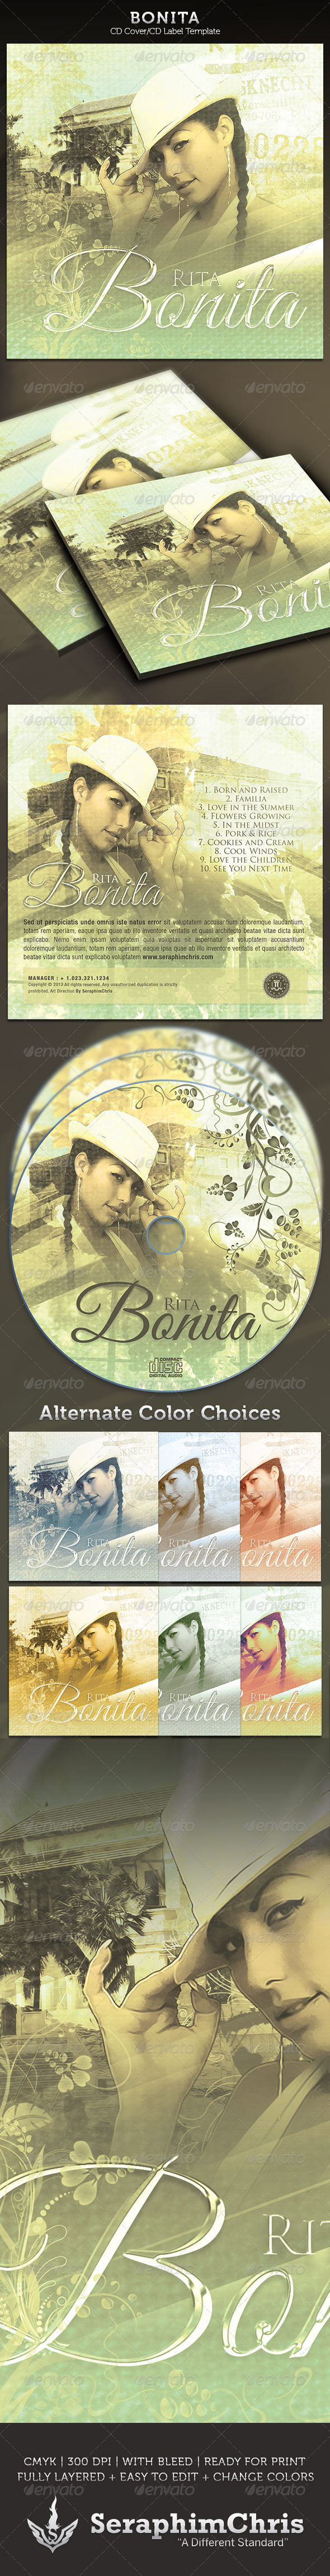 Bonita: CD Cover Artwork Template  - CD & DVD artwork Print Templates